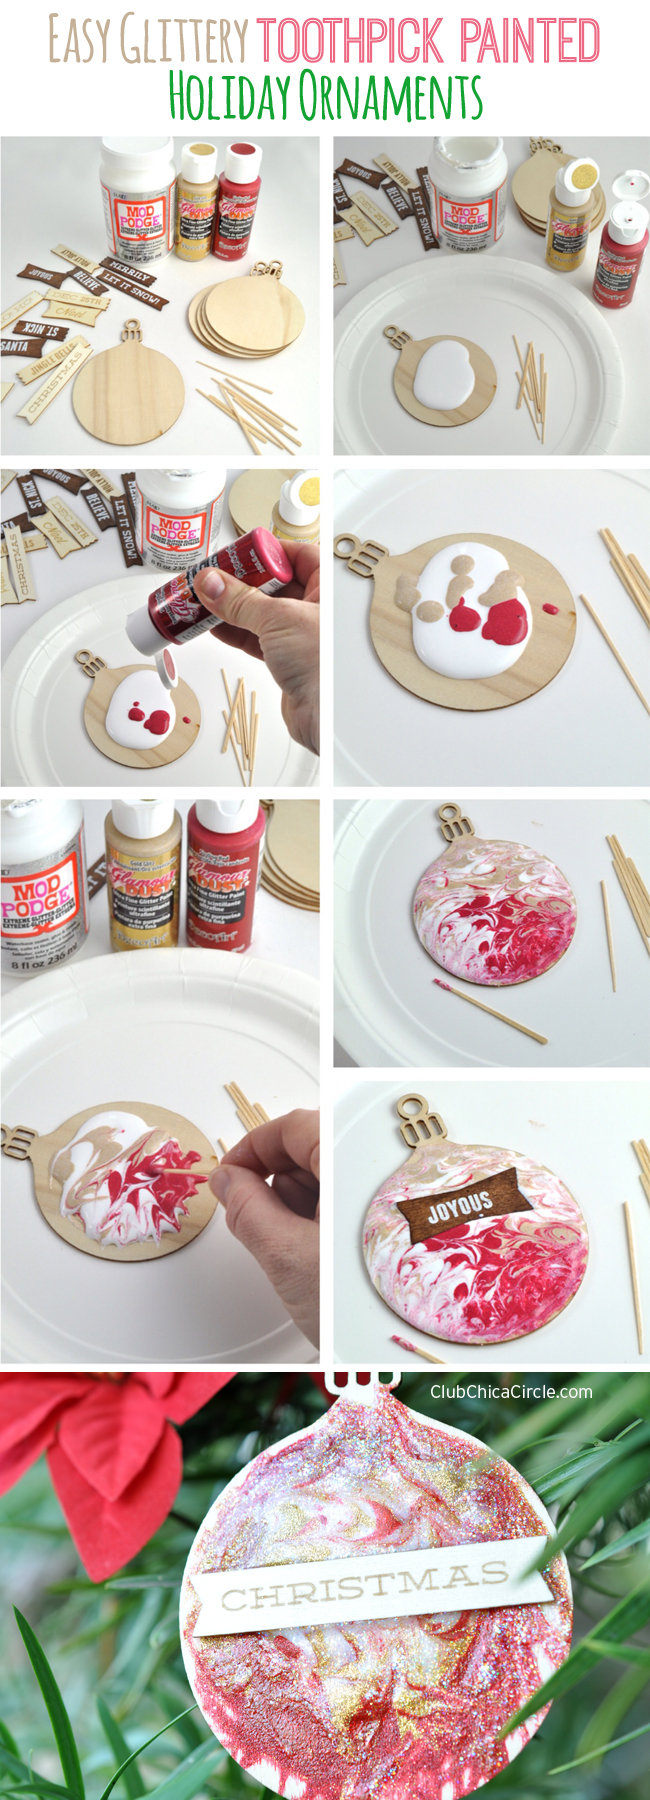 Easy Glittery Toothpick Painted Holiday Ornaments DIY